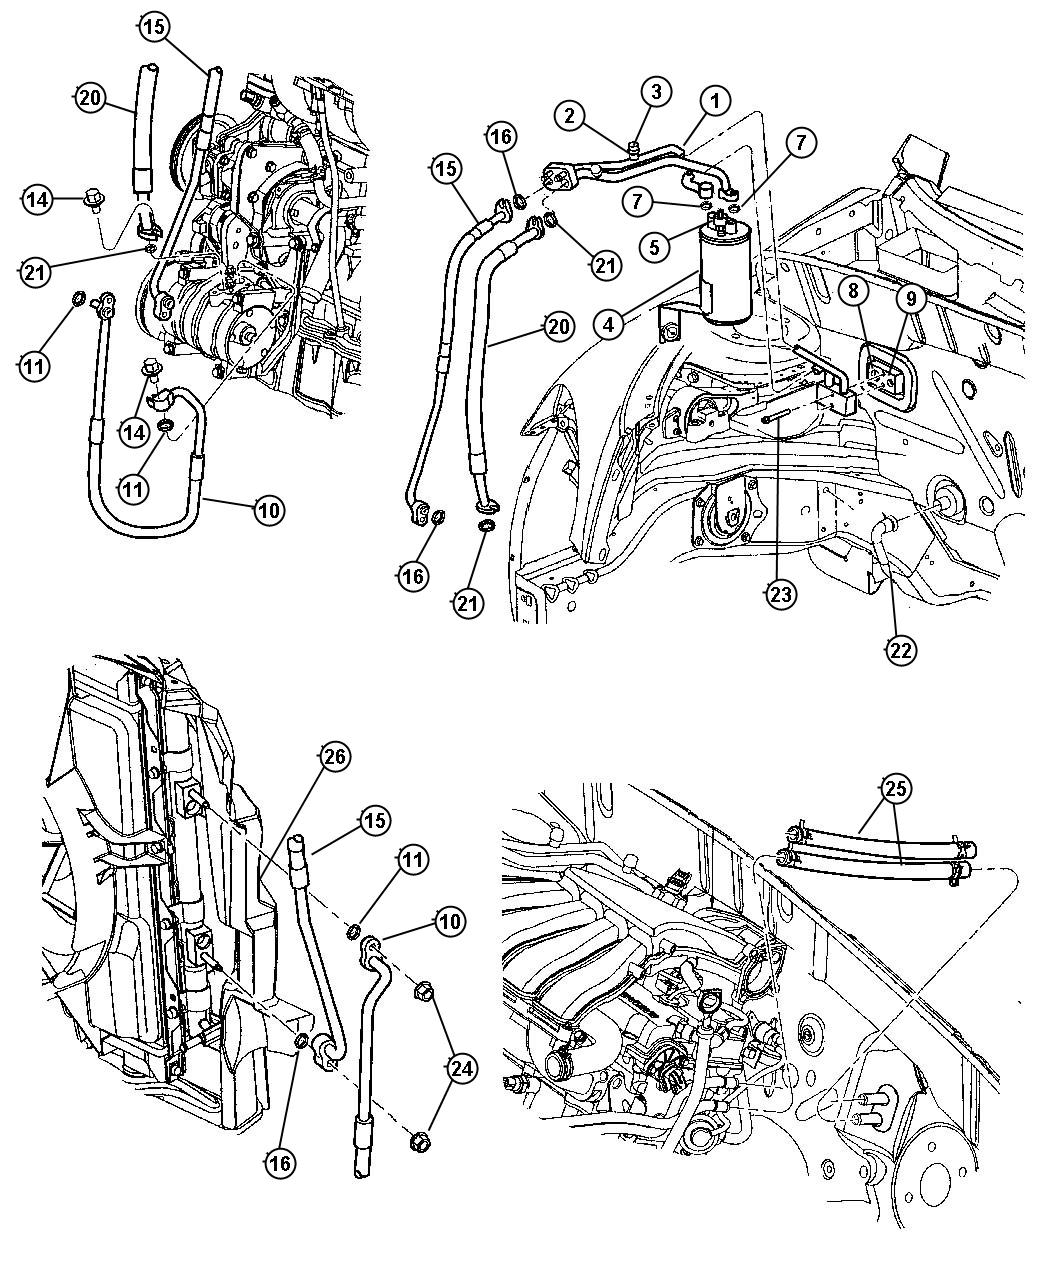 2012 Kia Sorento Engine Diagram likewise 2AMC4946AA moreover 1996 Volvo 850 Electric Cooling Fan System Schematic And Wiring Diagram besides RepairGuideContent additionally 5n7ic Chrysler Town   Country Lxi Find Low Port. on 2008 pt cruiser air conditioner diagram